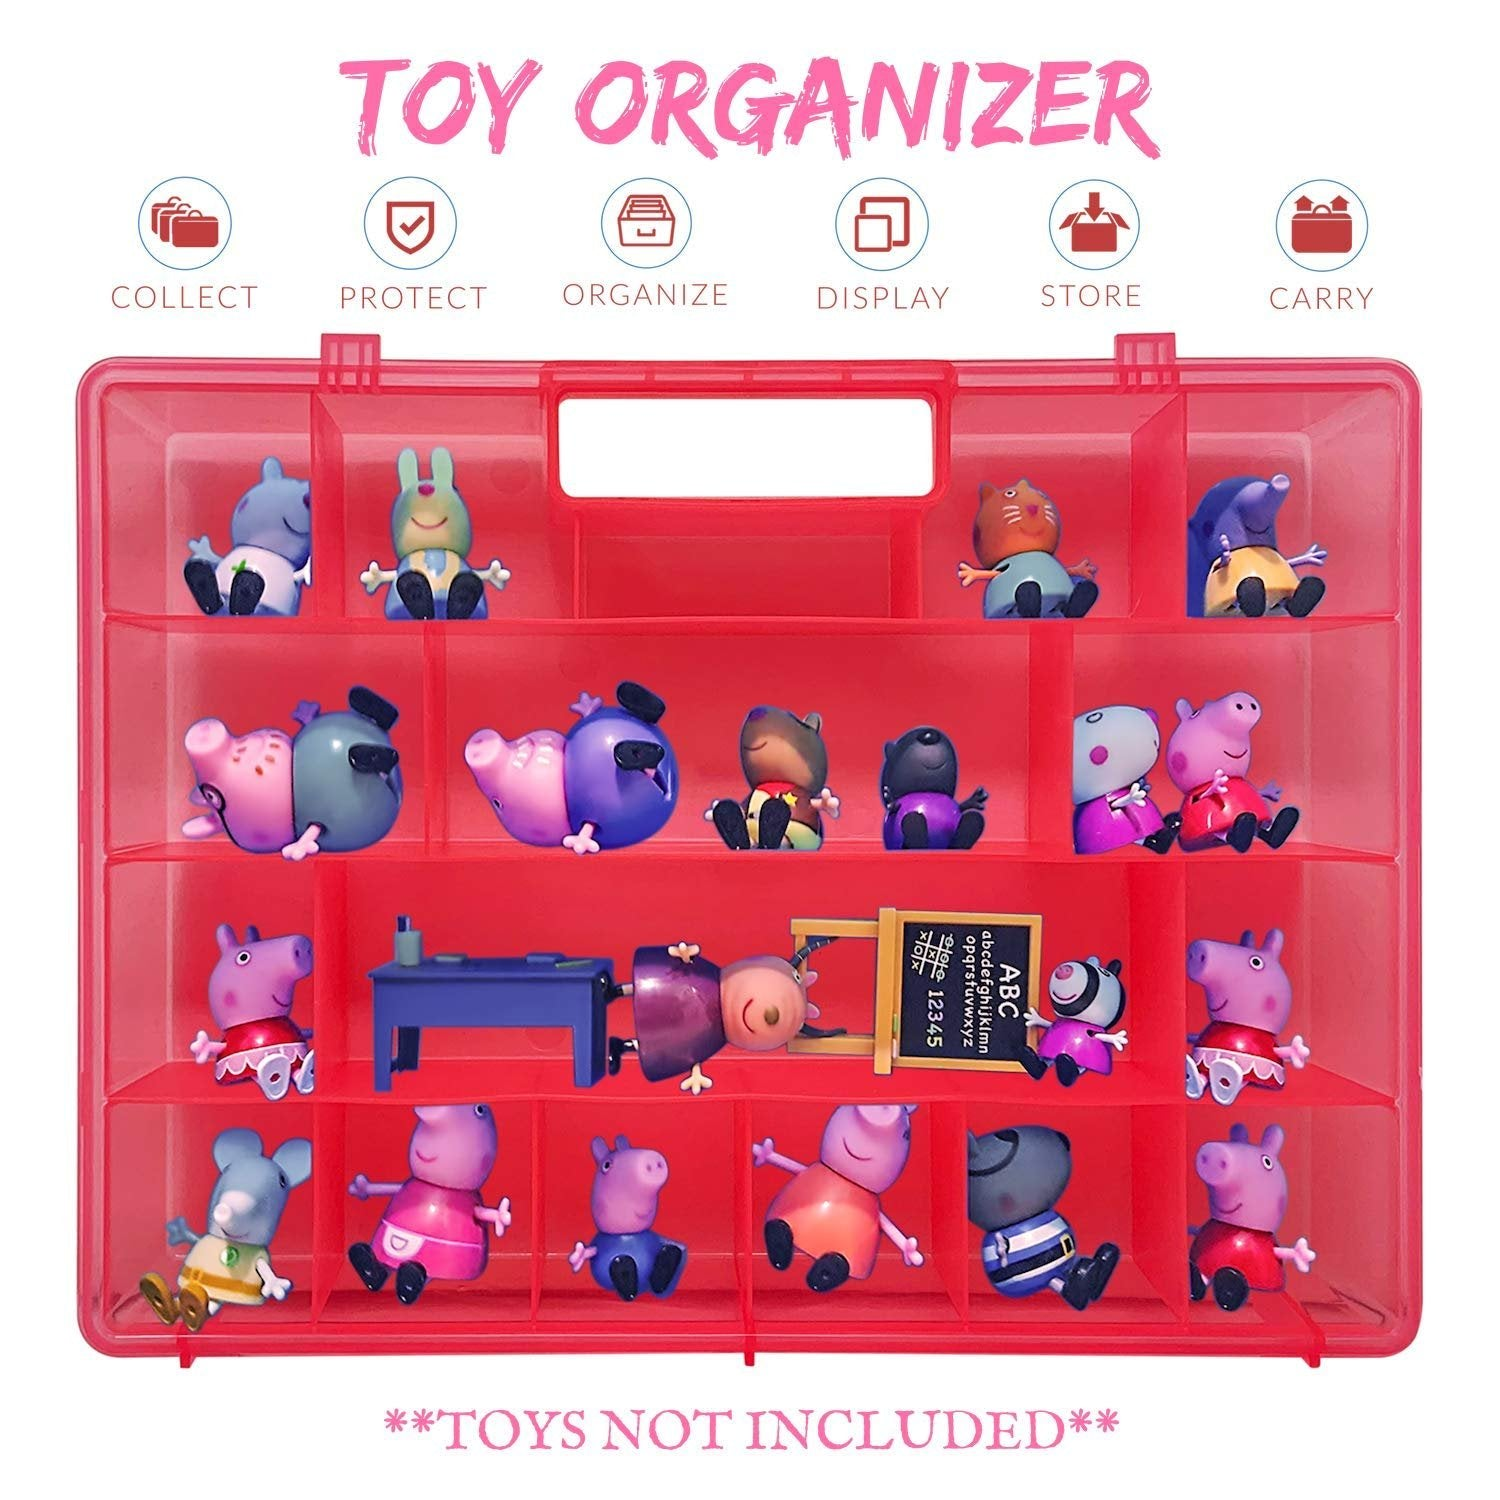 Life Made Better Holder, Pink Protector Toy Storage Carrier, Compatible with Peppa Pig Figures Playset Organizer. Accessories Designed for Kids by LMB